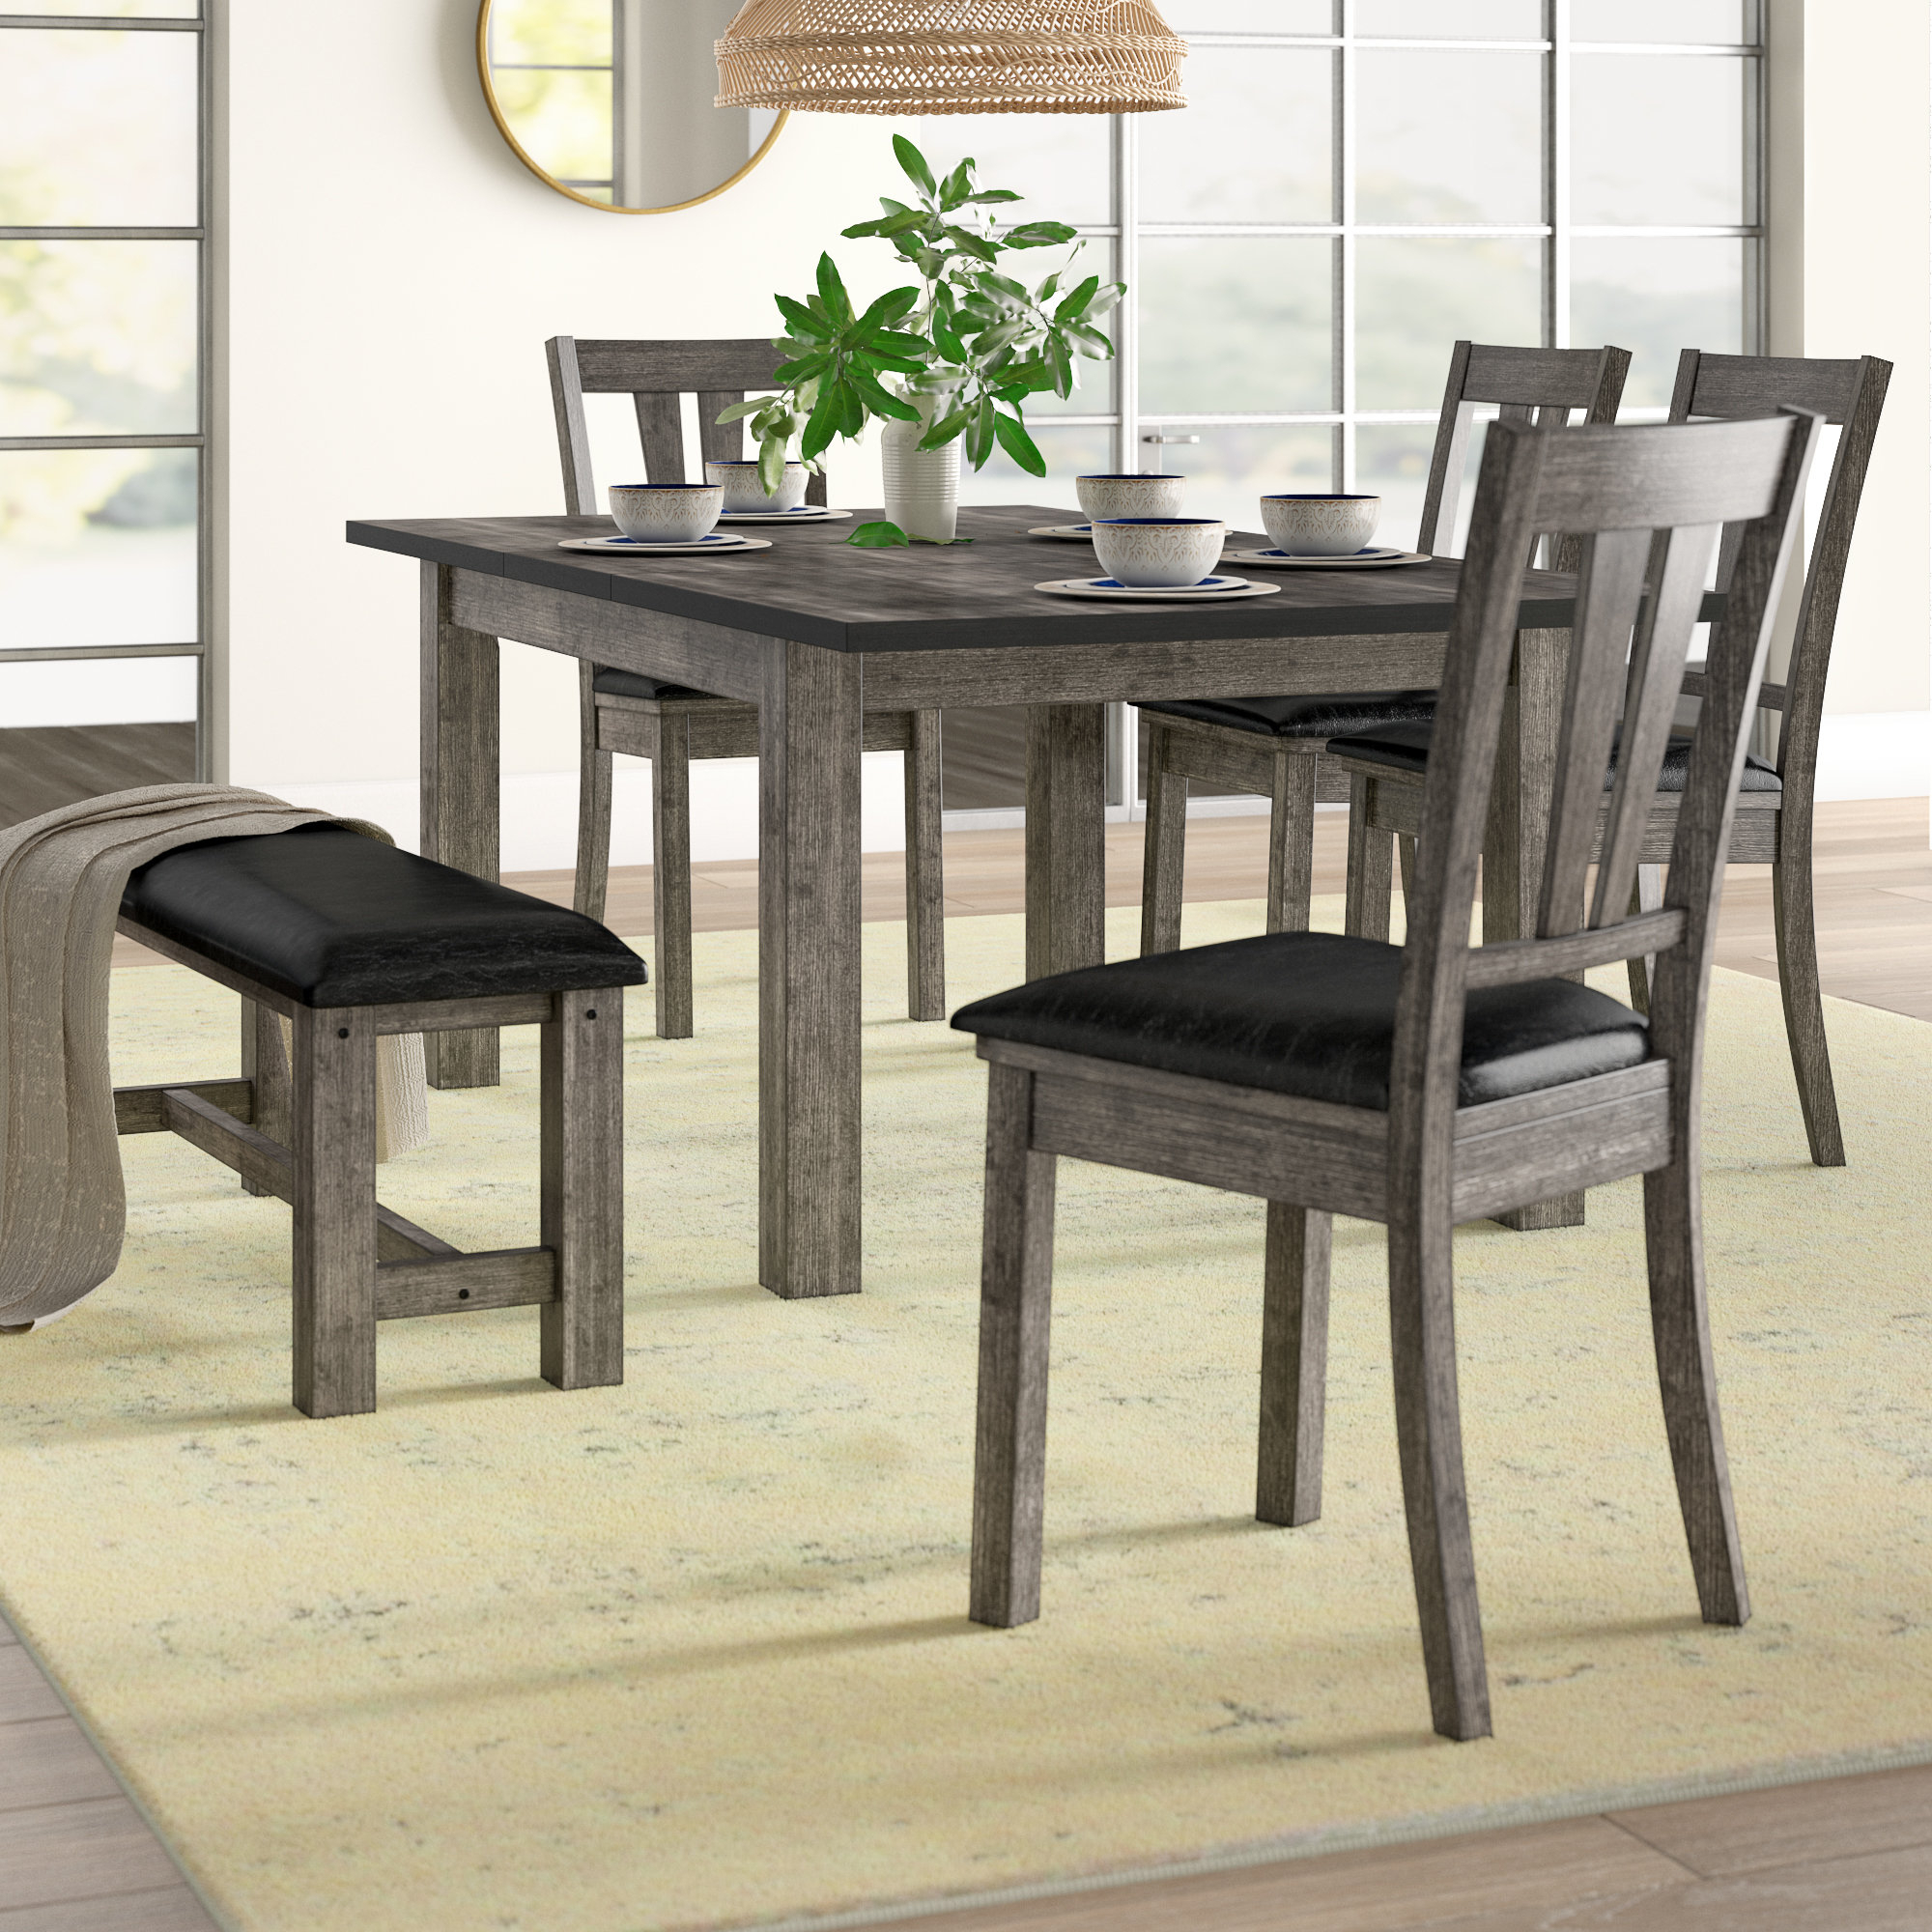 Chelmsford 3 Piece Dining Sets Throughout Favorite Katarina 6 Piece Extendable Solid Wood Dining Set (Gallery 12 of 20)